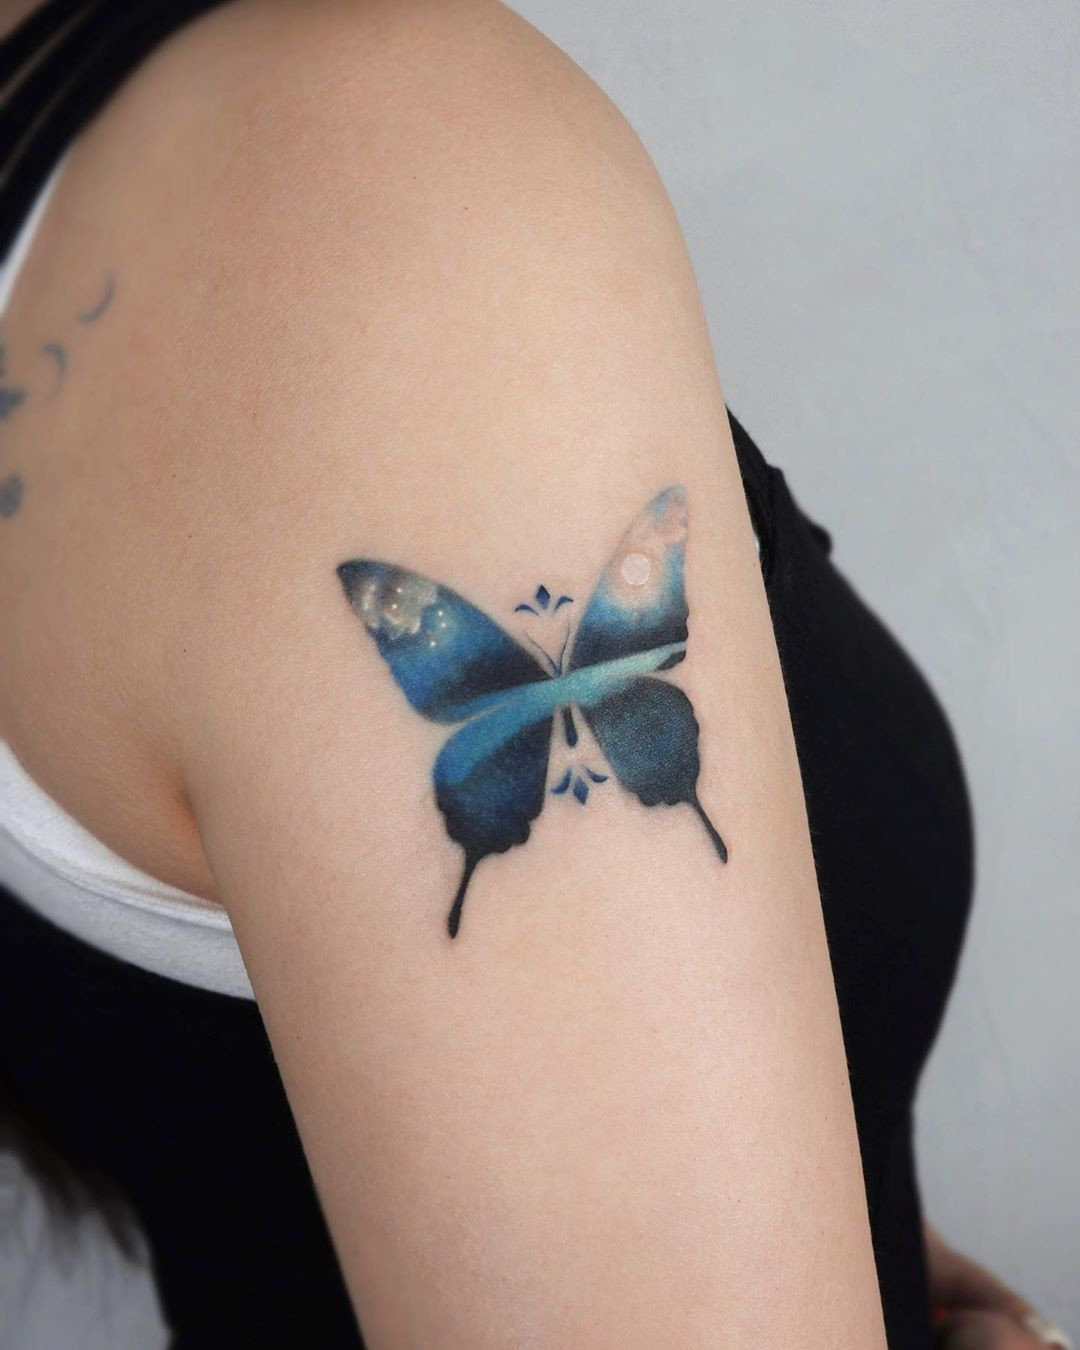 52 Sexiest Butterfly Tattoo Designs in 2020